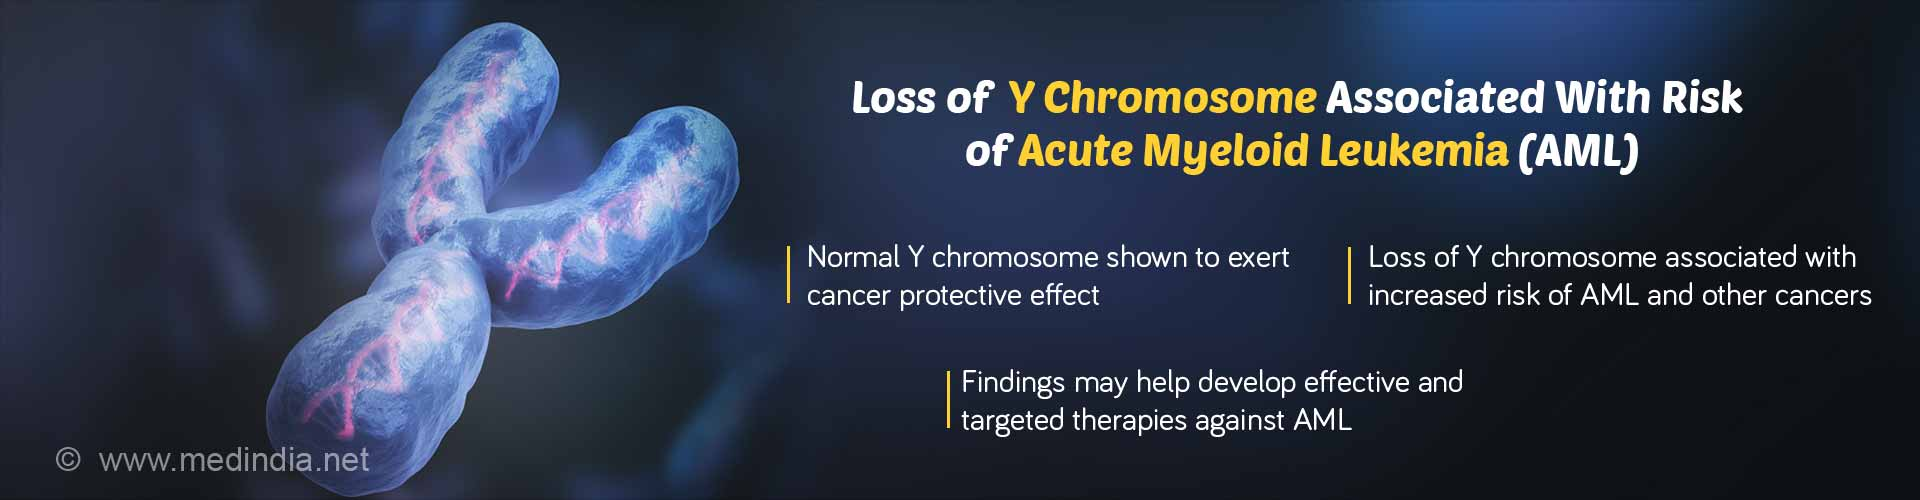 Loss of Y Chromosome Associated With Risk of Acute Myeloid Leukemia (AML)